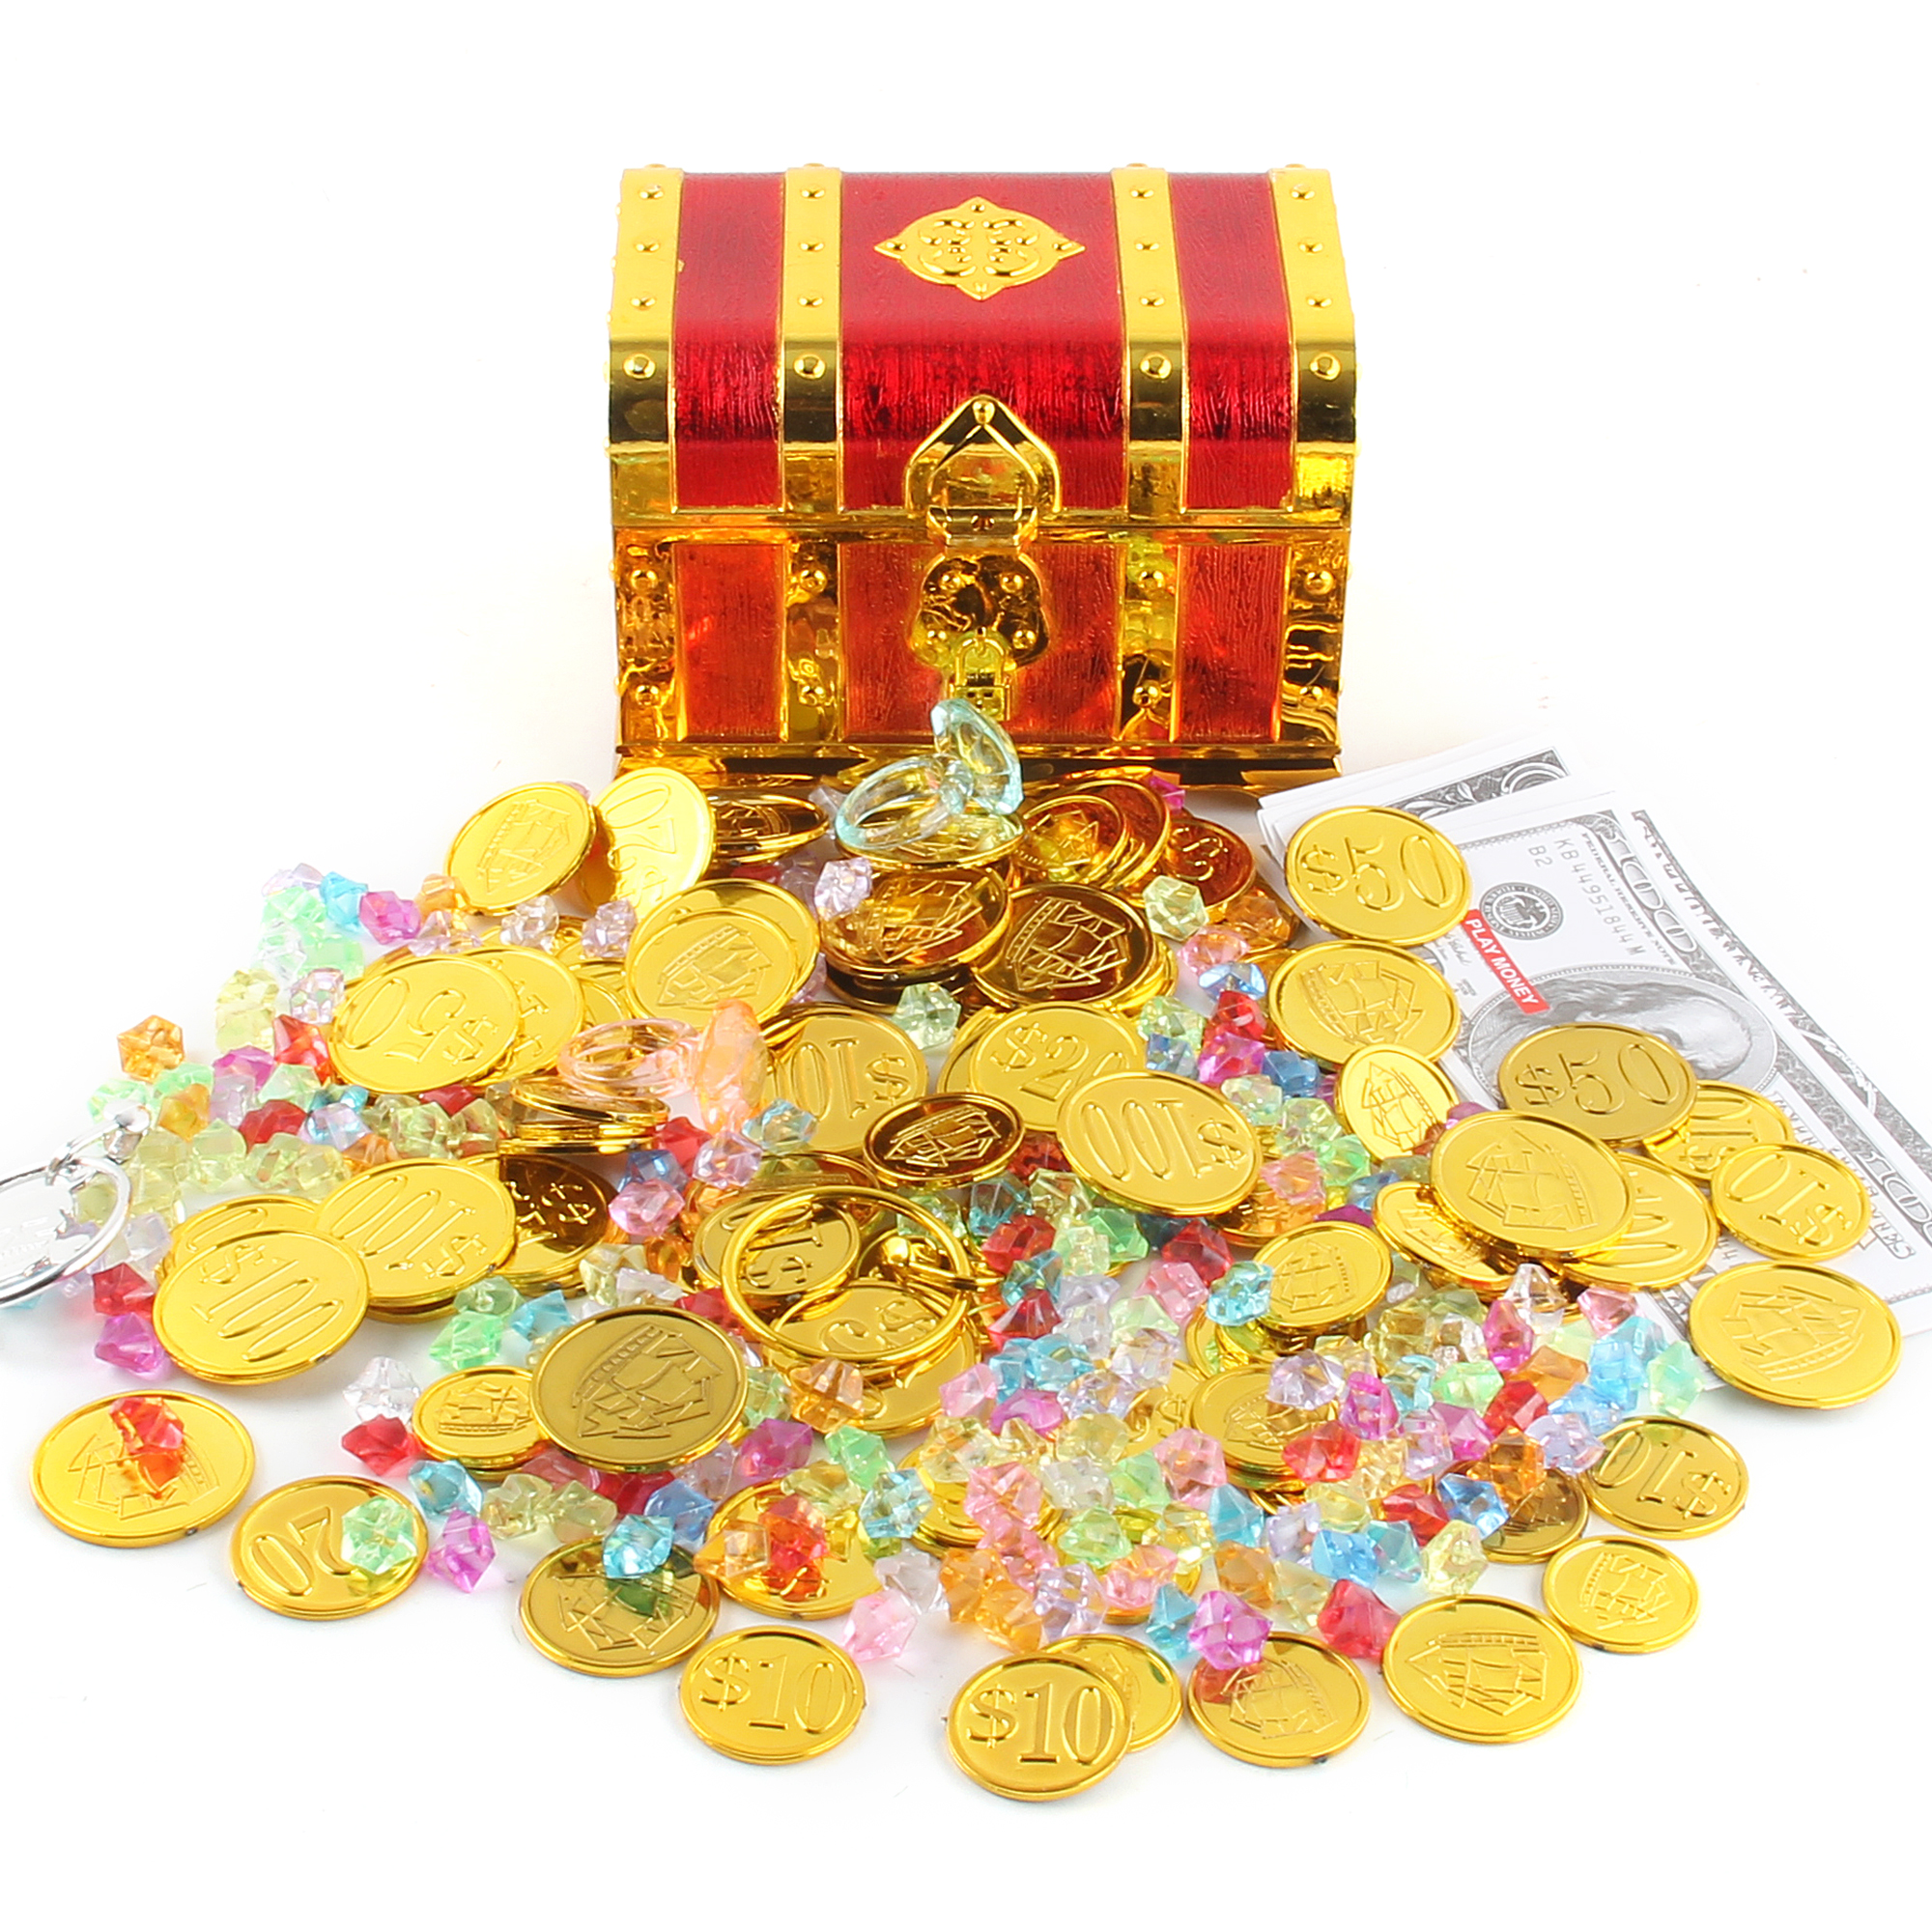 100pcs Plastic Pirate Gold Coins Colorful Gold Treasure Coins For Play Favor Party Supplies Pirate Party Treasure Hunt Game